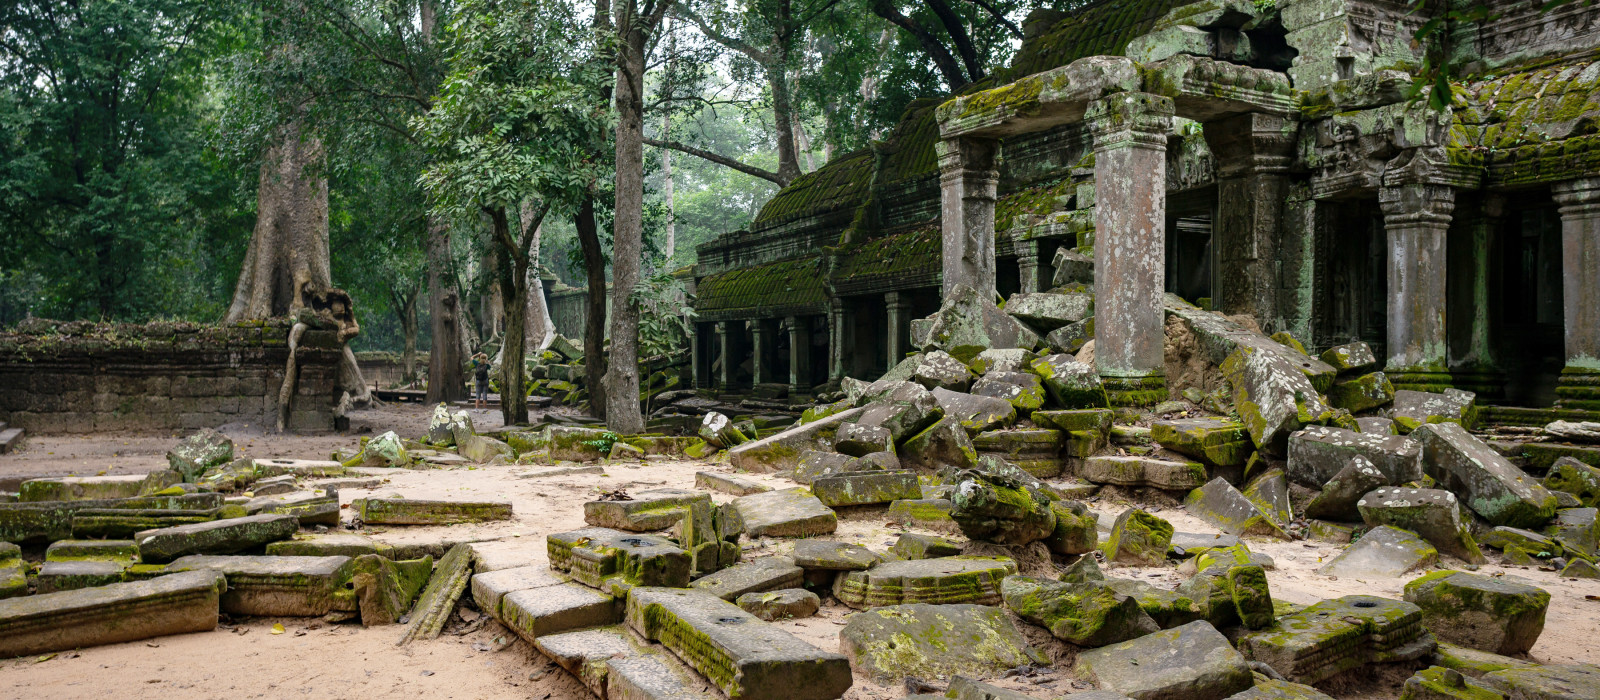 Abandoned temples in Cambodia, Asia